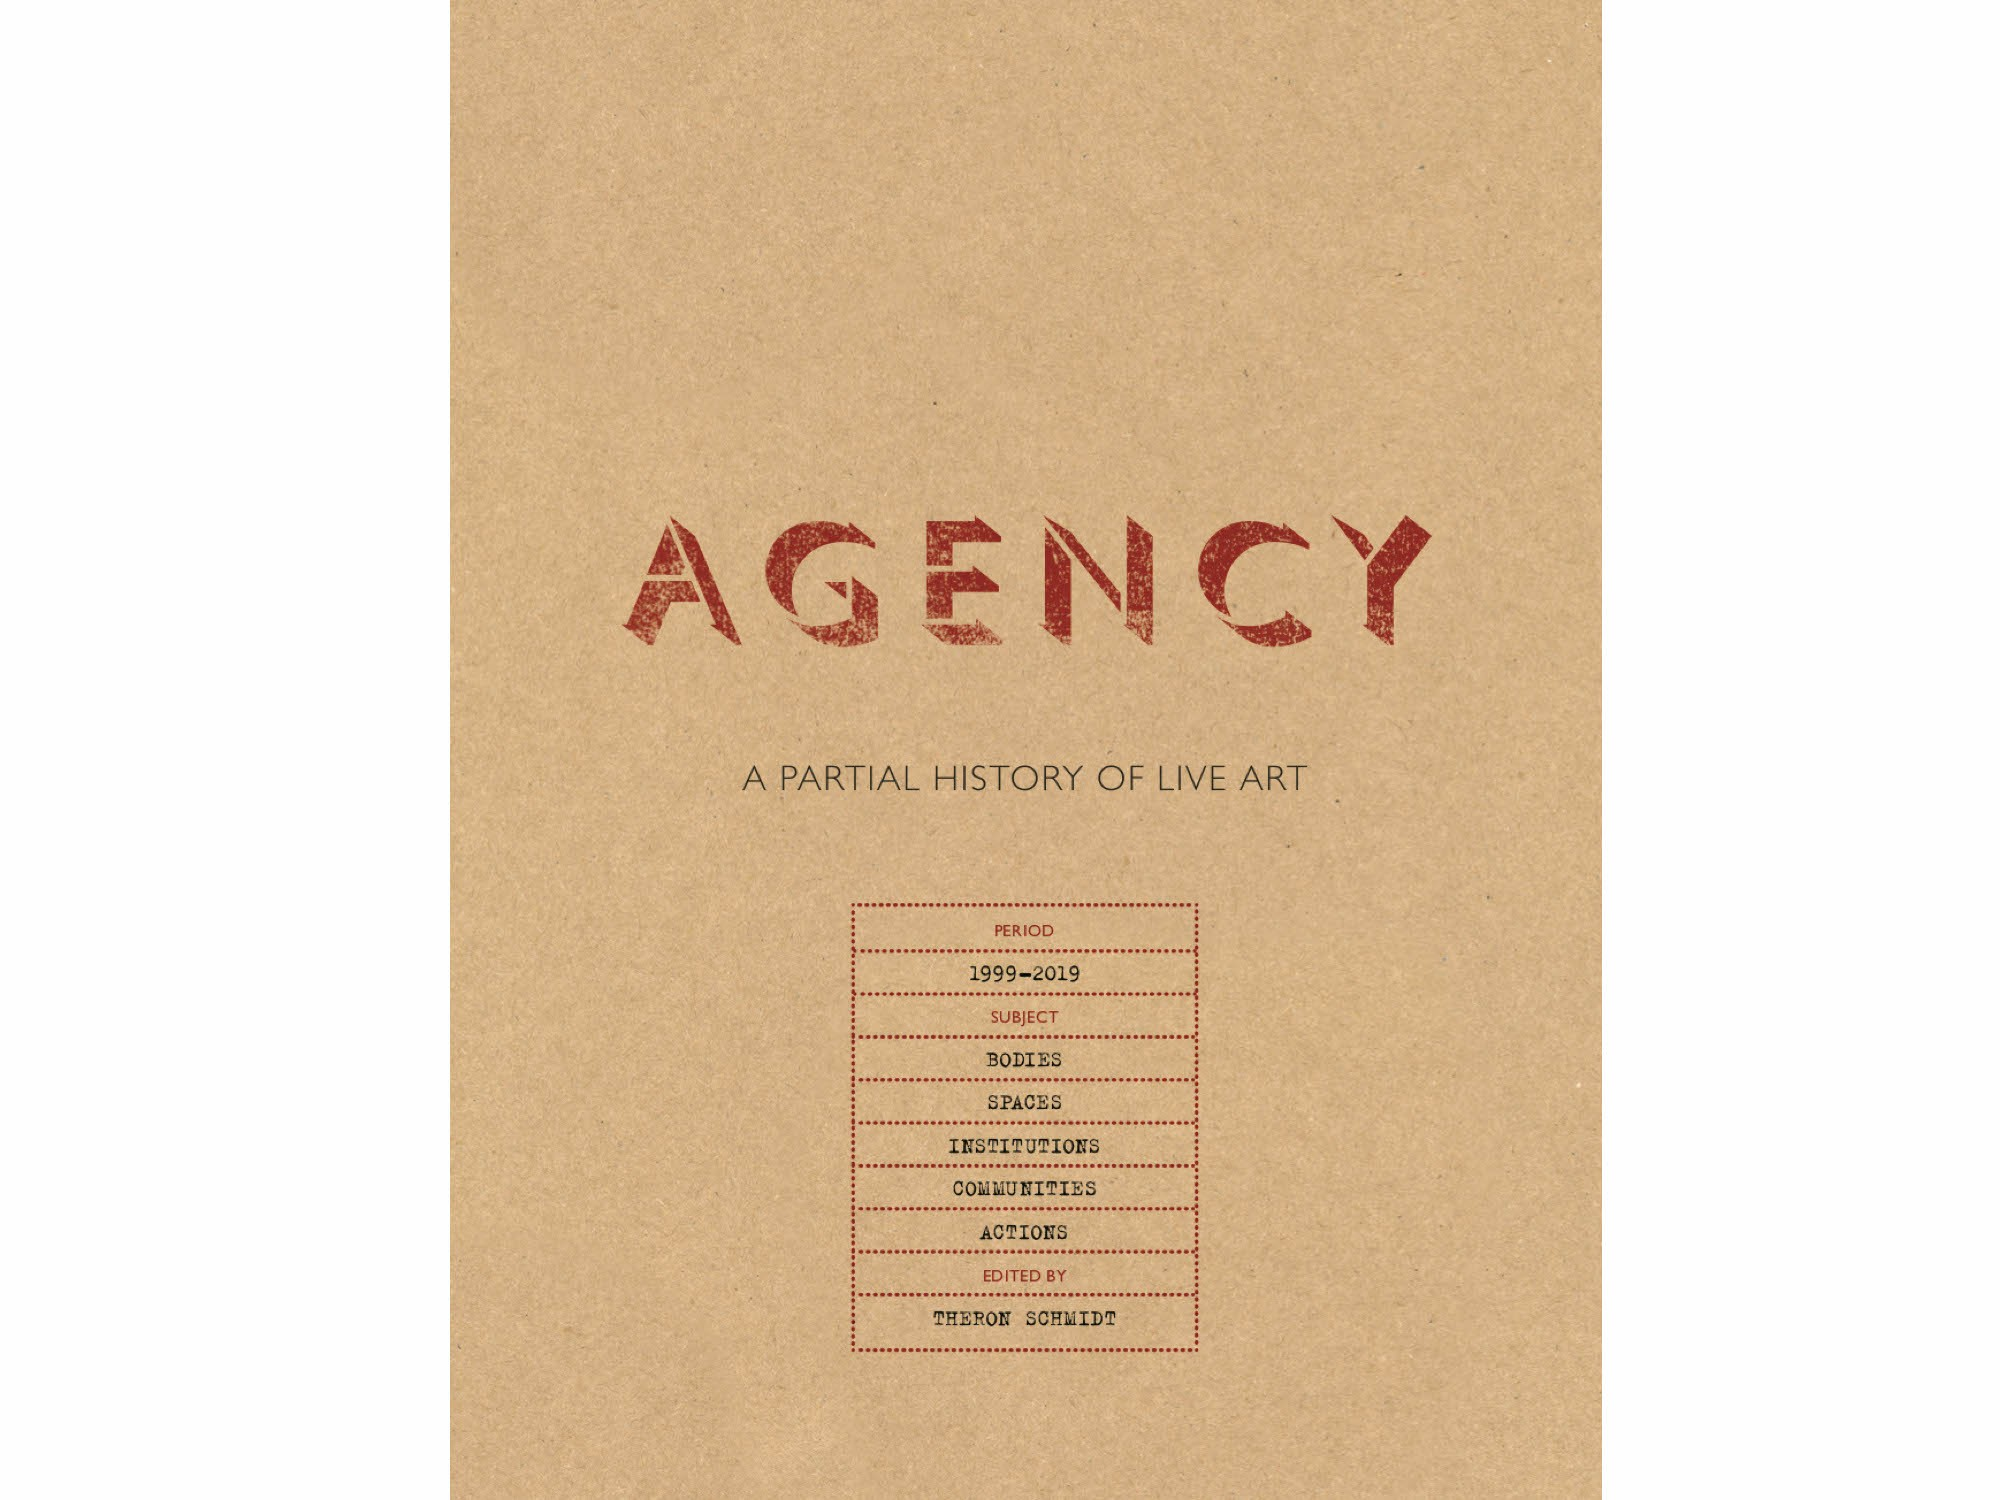 Brown book cover: AGENCY: A Partial History of Live Art